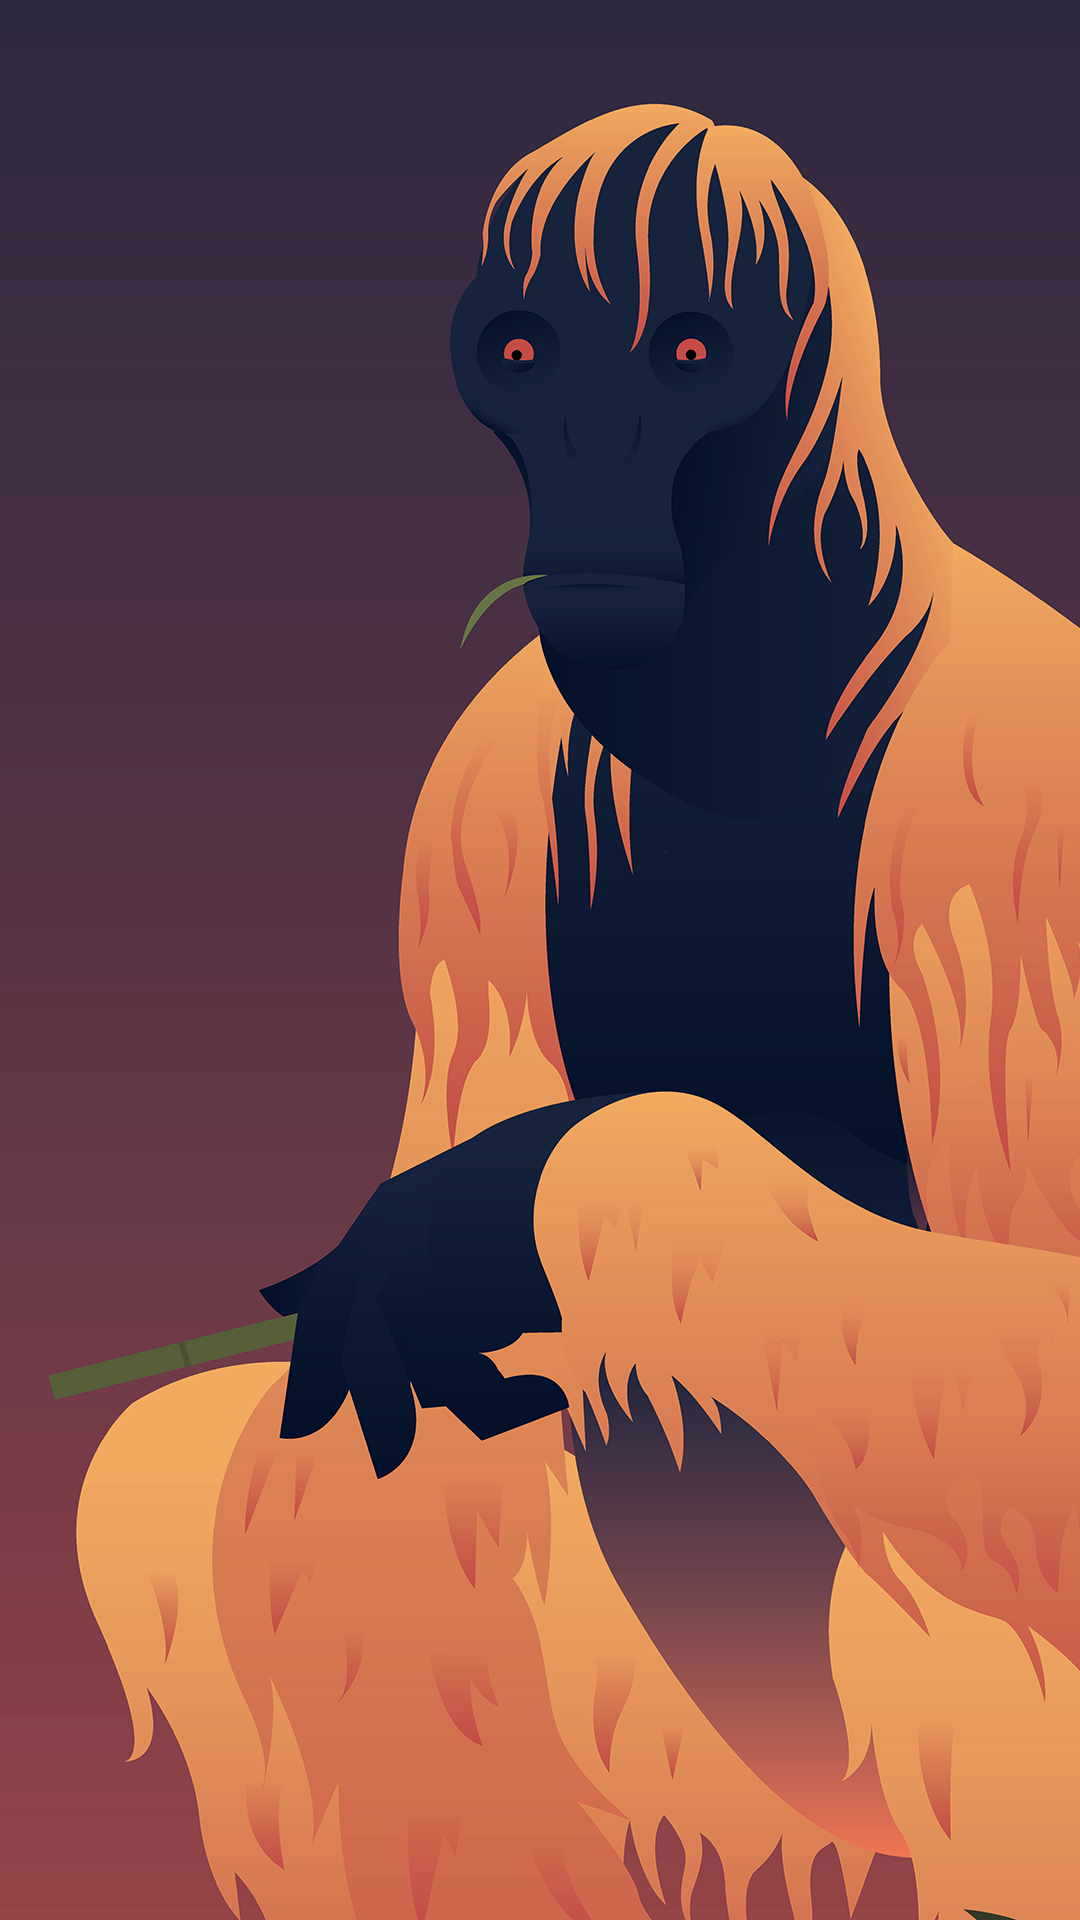 minimalist-halloween-iphone-hd-wallpaper